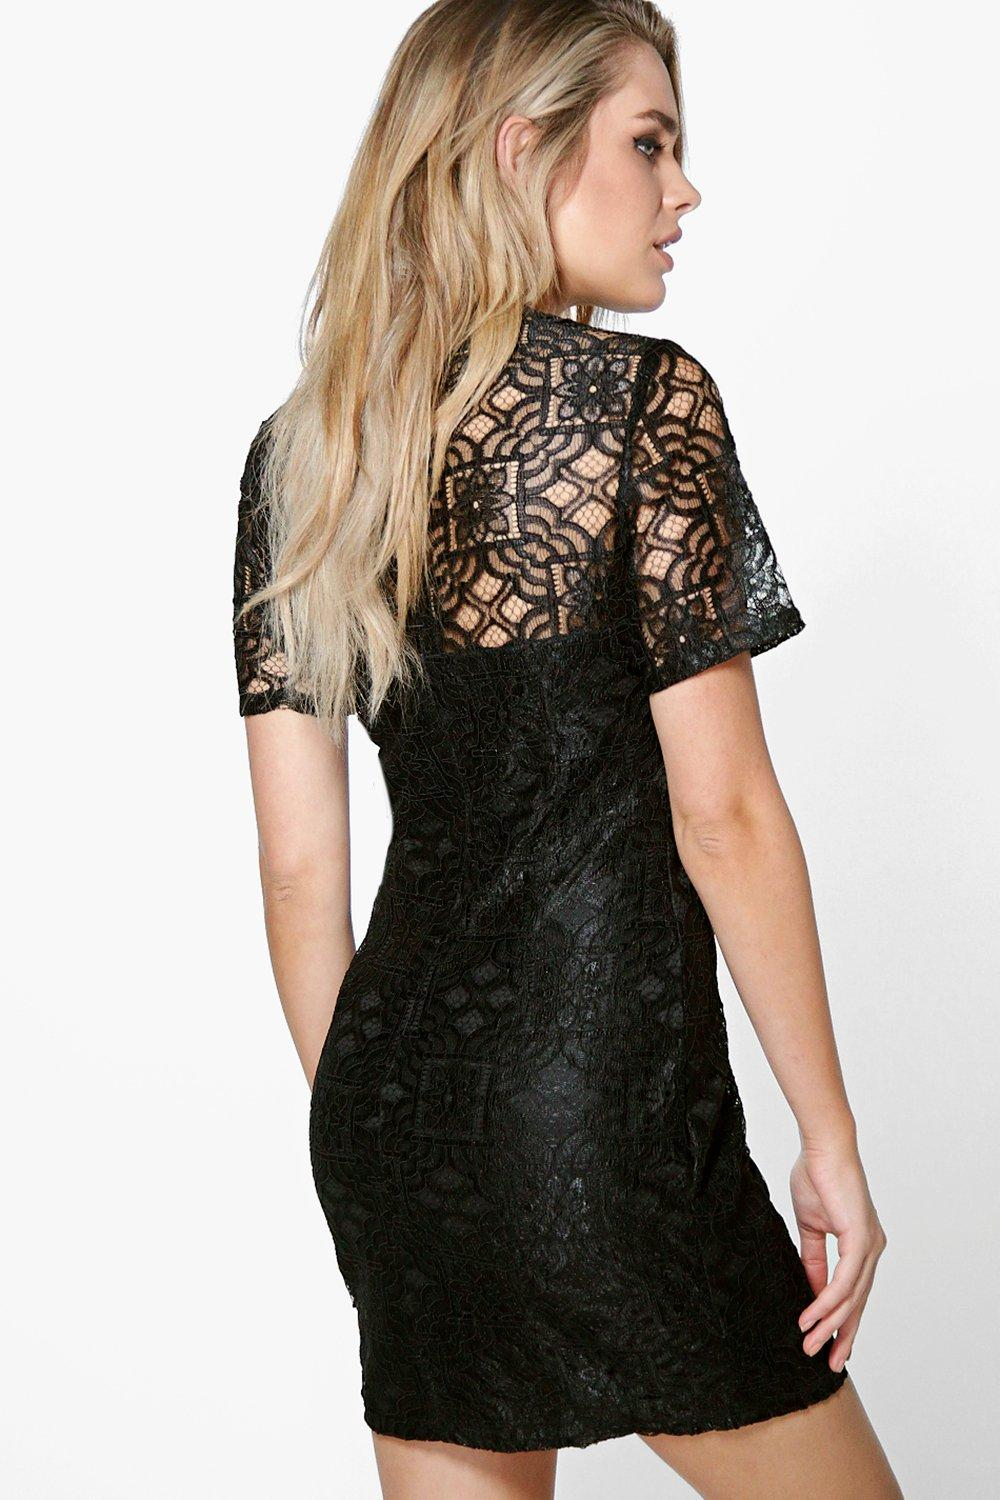 Ivy all over lace dress